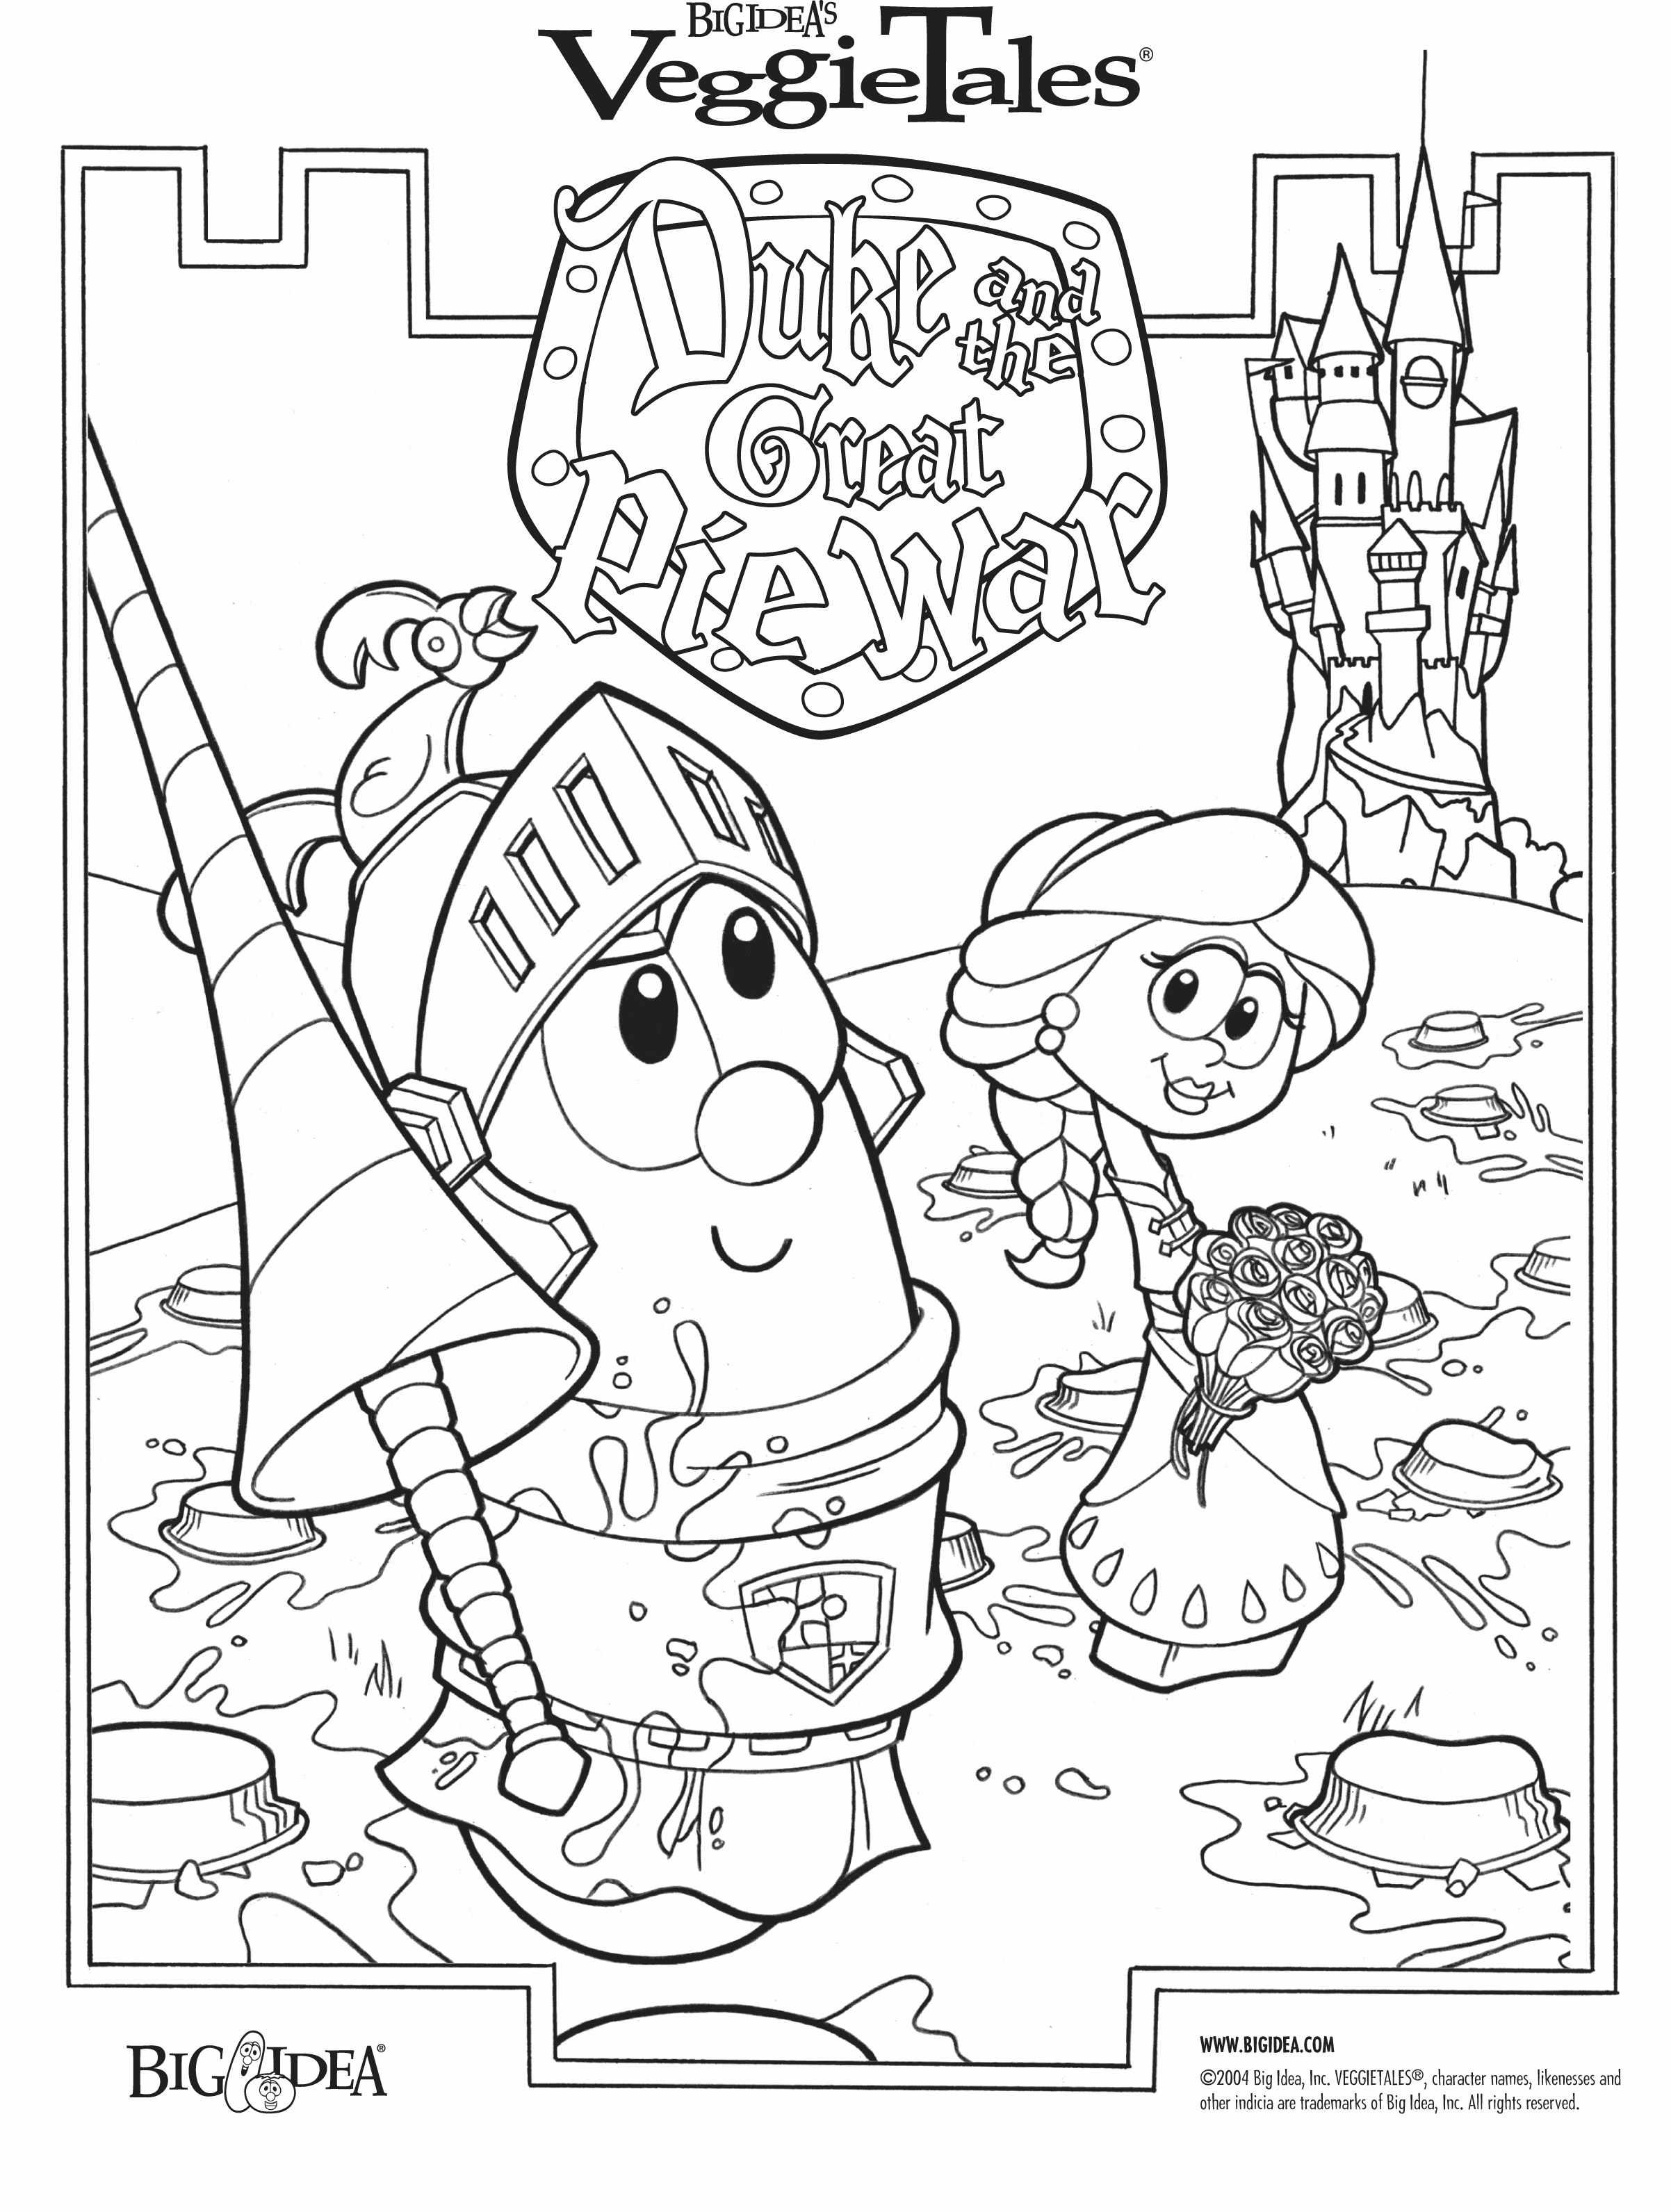 Duke & the Great Pie War Bible Story Coloring Pages For Preschoolers ...